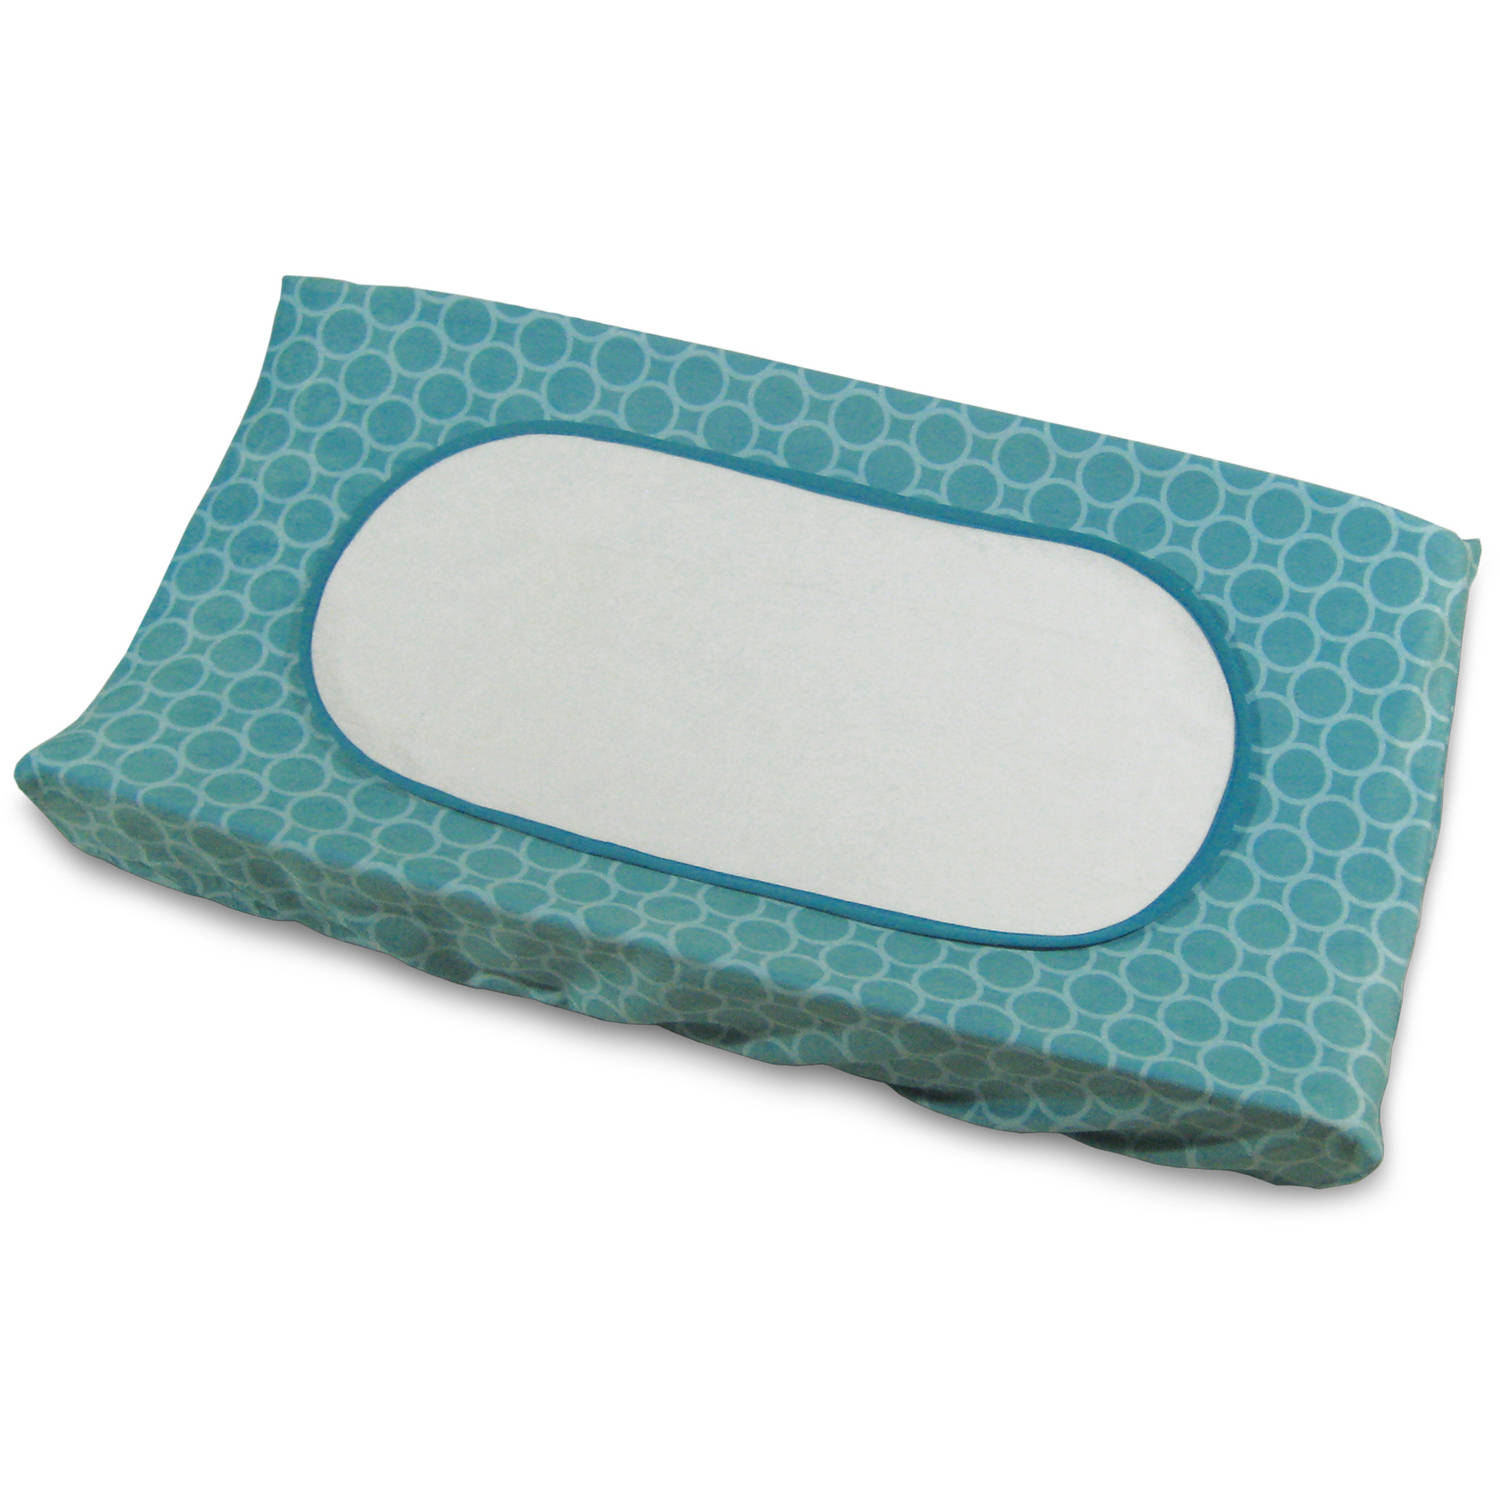 Boppy Changing Pad Set, Turquoise Rings